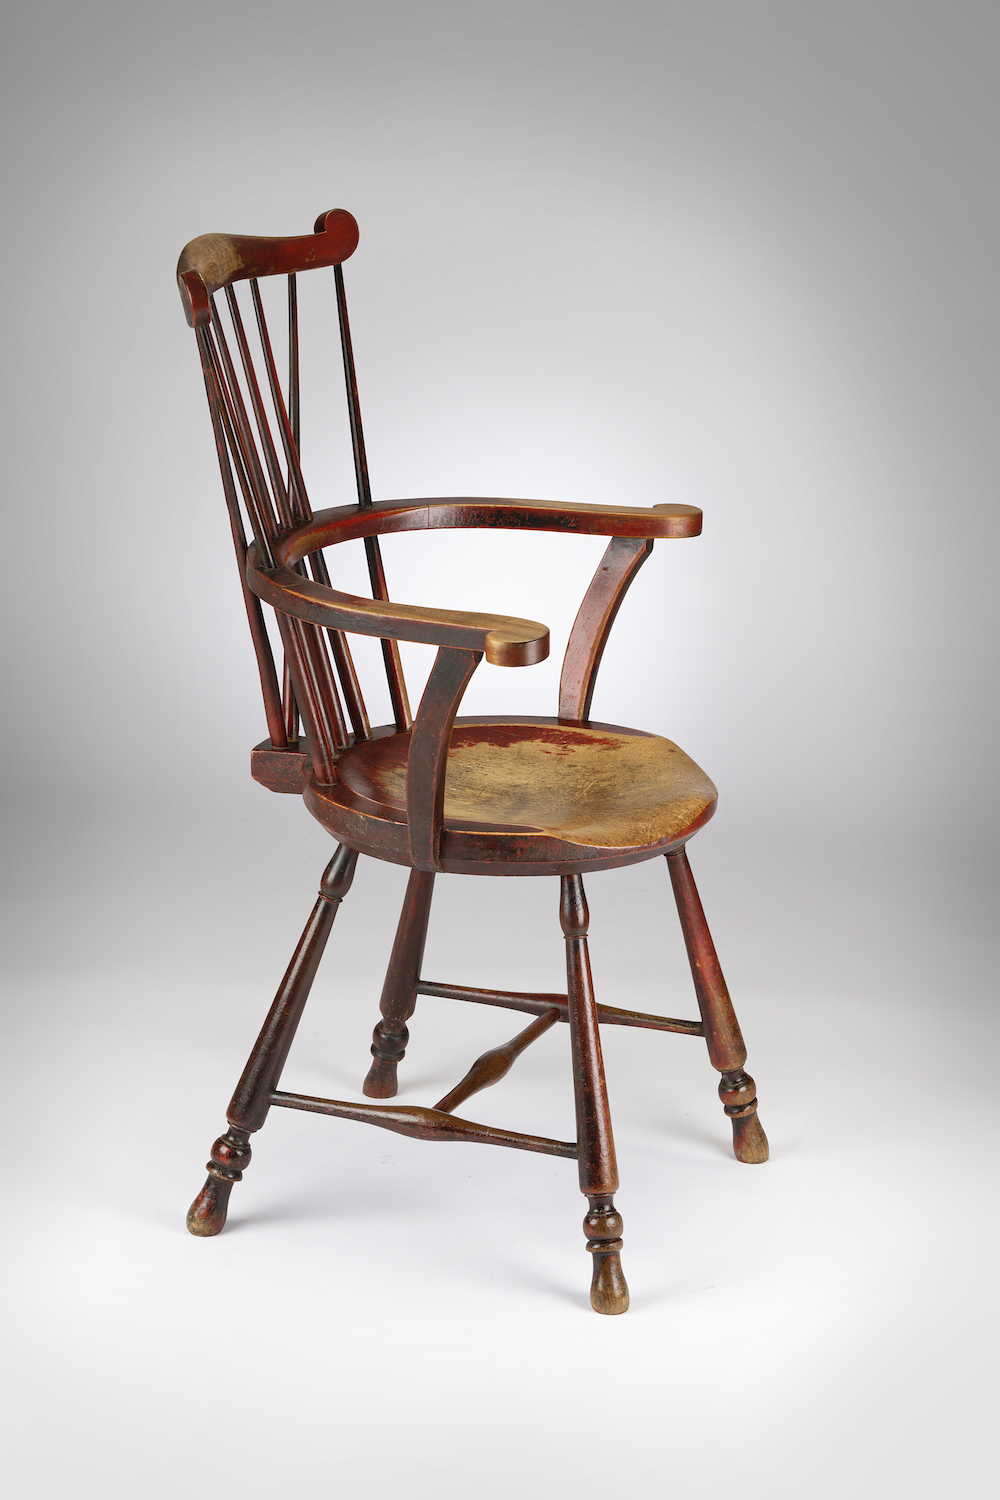 Image of A Painted Windsor Chair of the Goldsmith Type